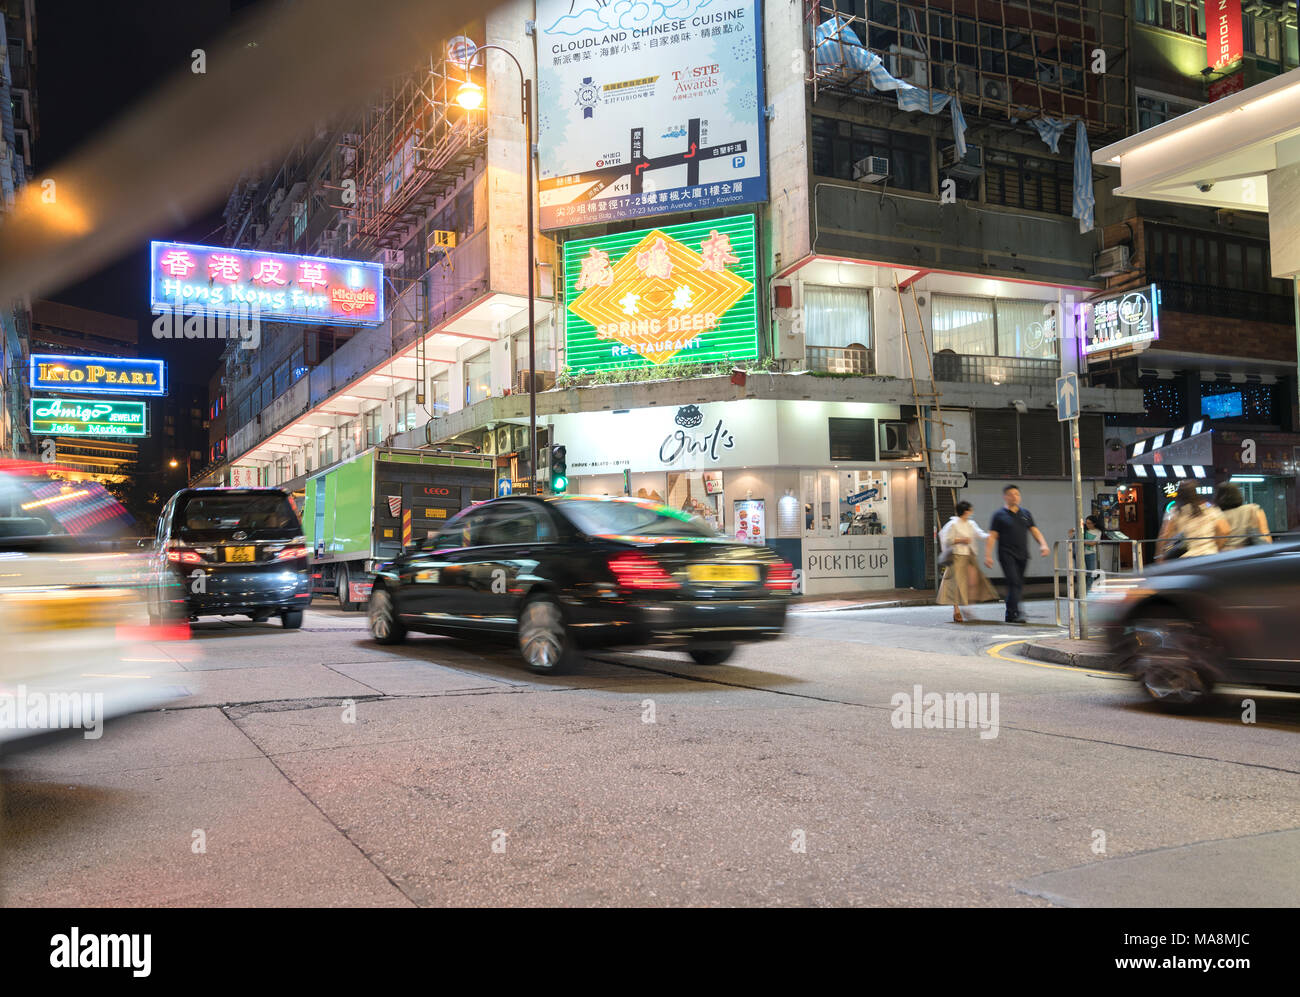 KOWLOON, HONG KONG - SEPTEMBER 18 2017; Bright neon signs dominate in long exposure night scene typically Asian downtown city corner street blurred pe - Stock Image